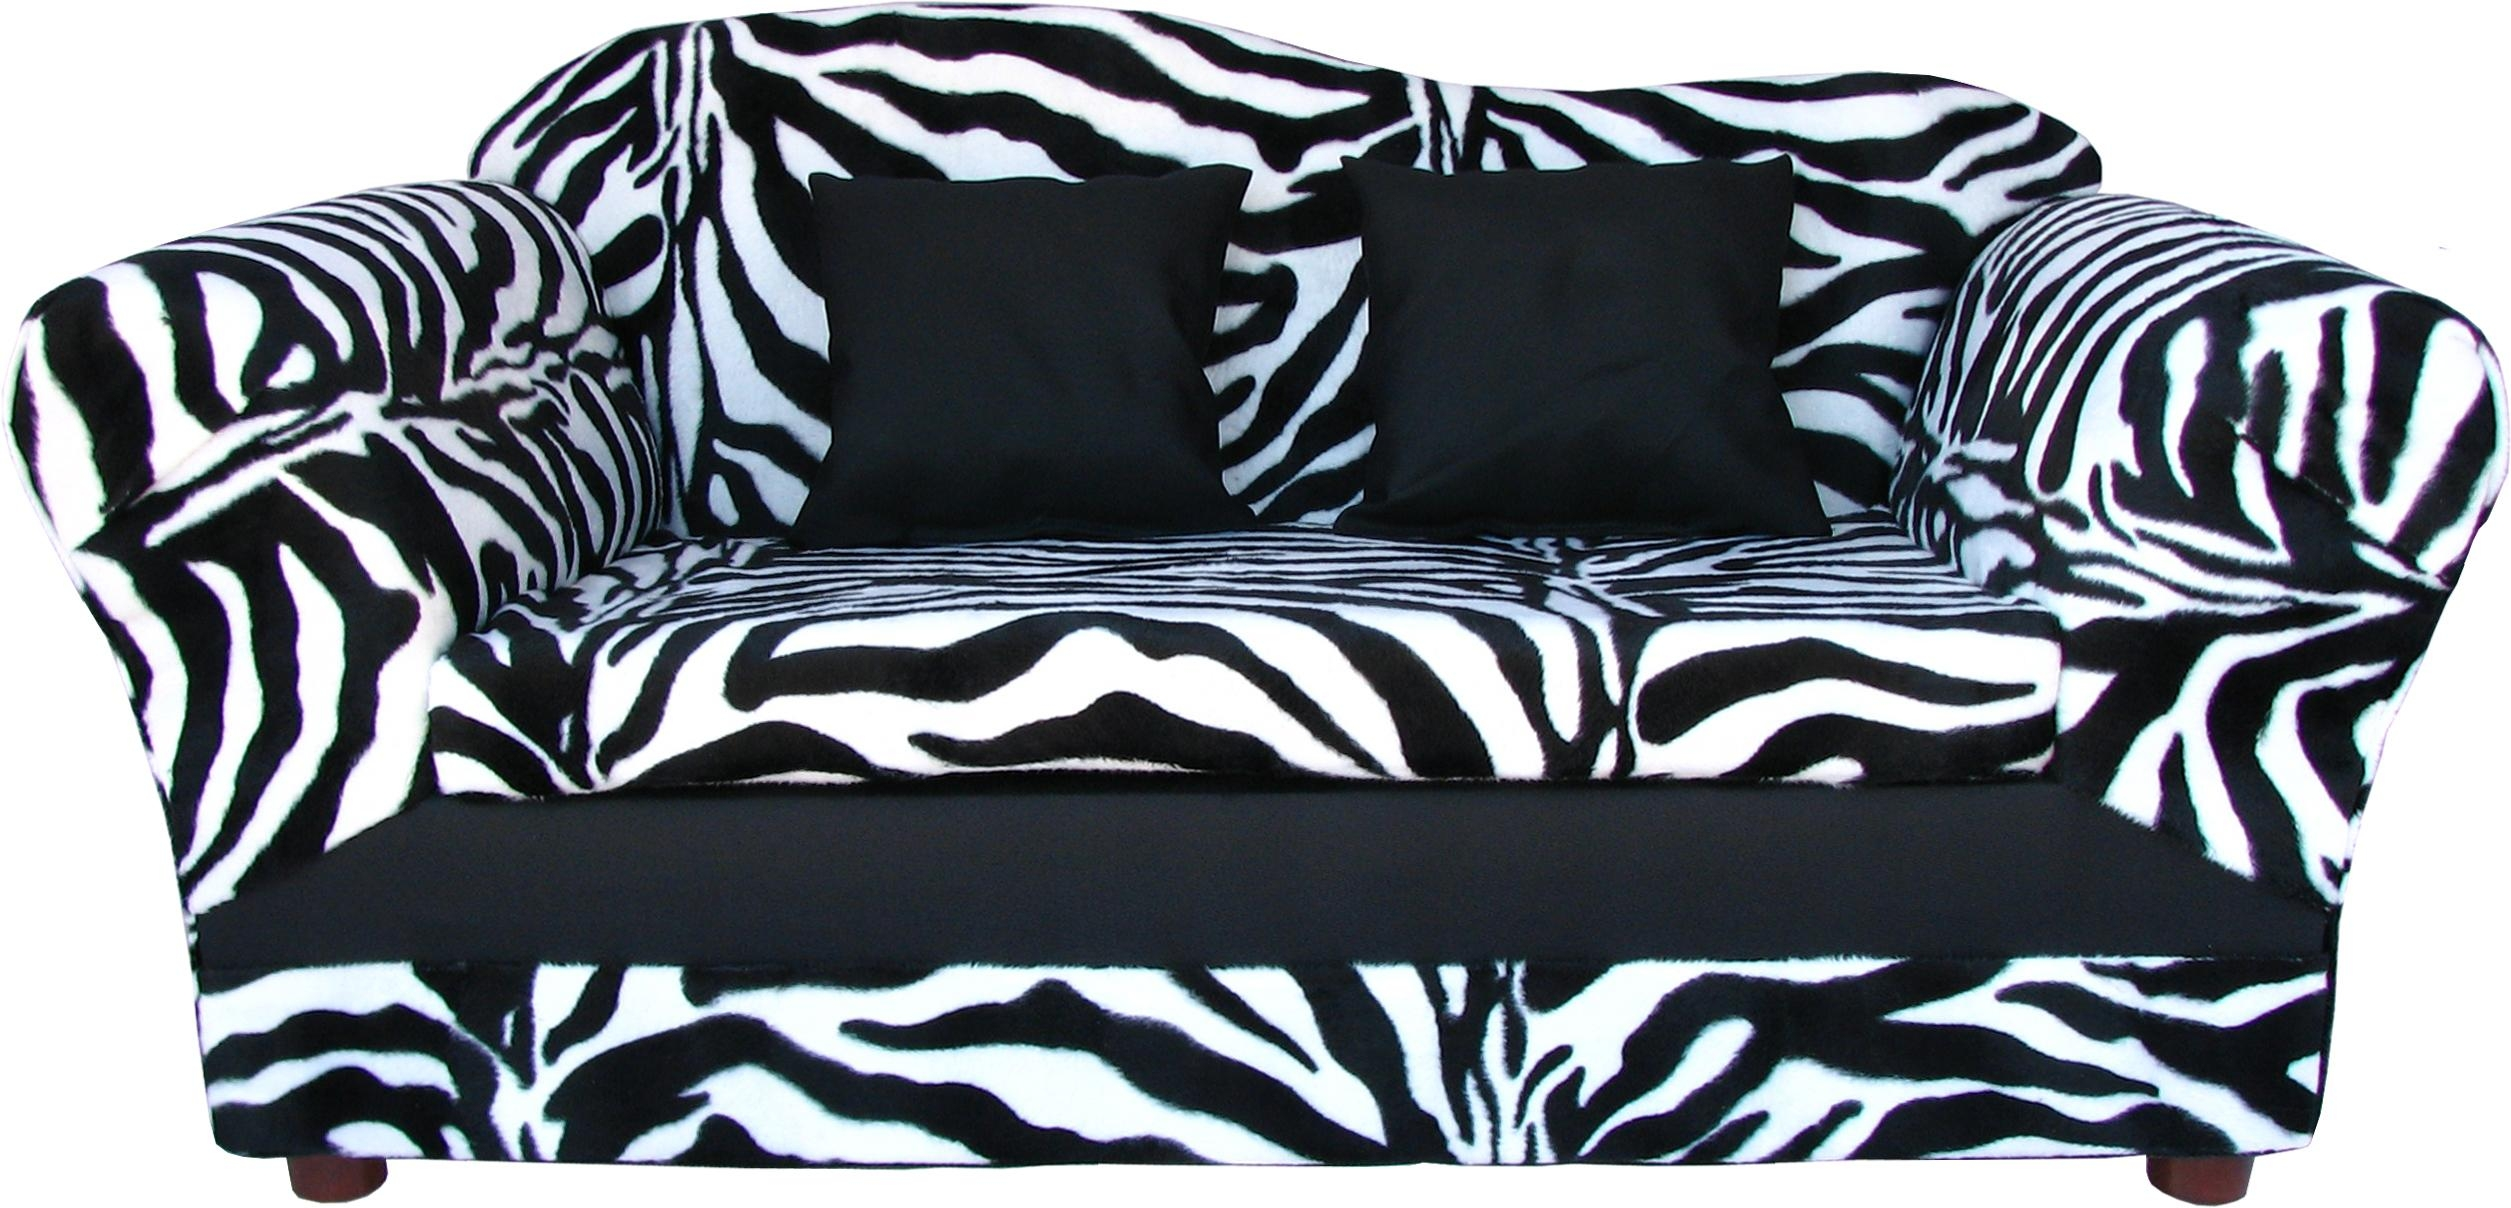 Zebra Sofa 79 With Zebra Sofa | Jinanhongyu With Regard To Kids Sofa Chair And Ottoman Set Zebra (Image 20 of 20)